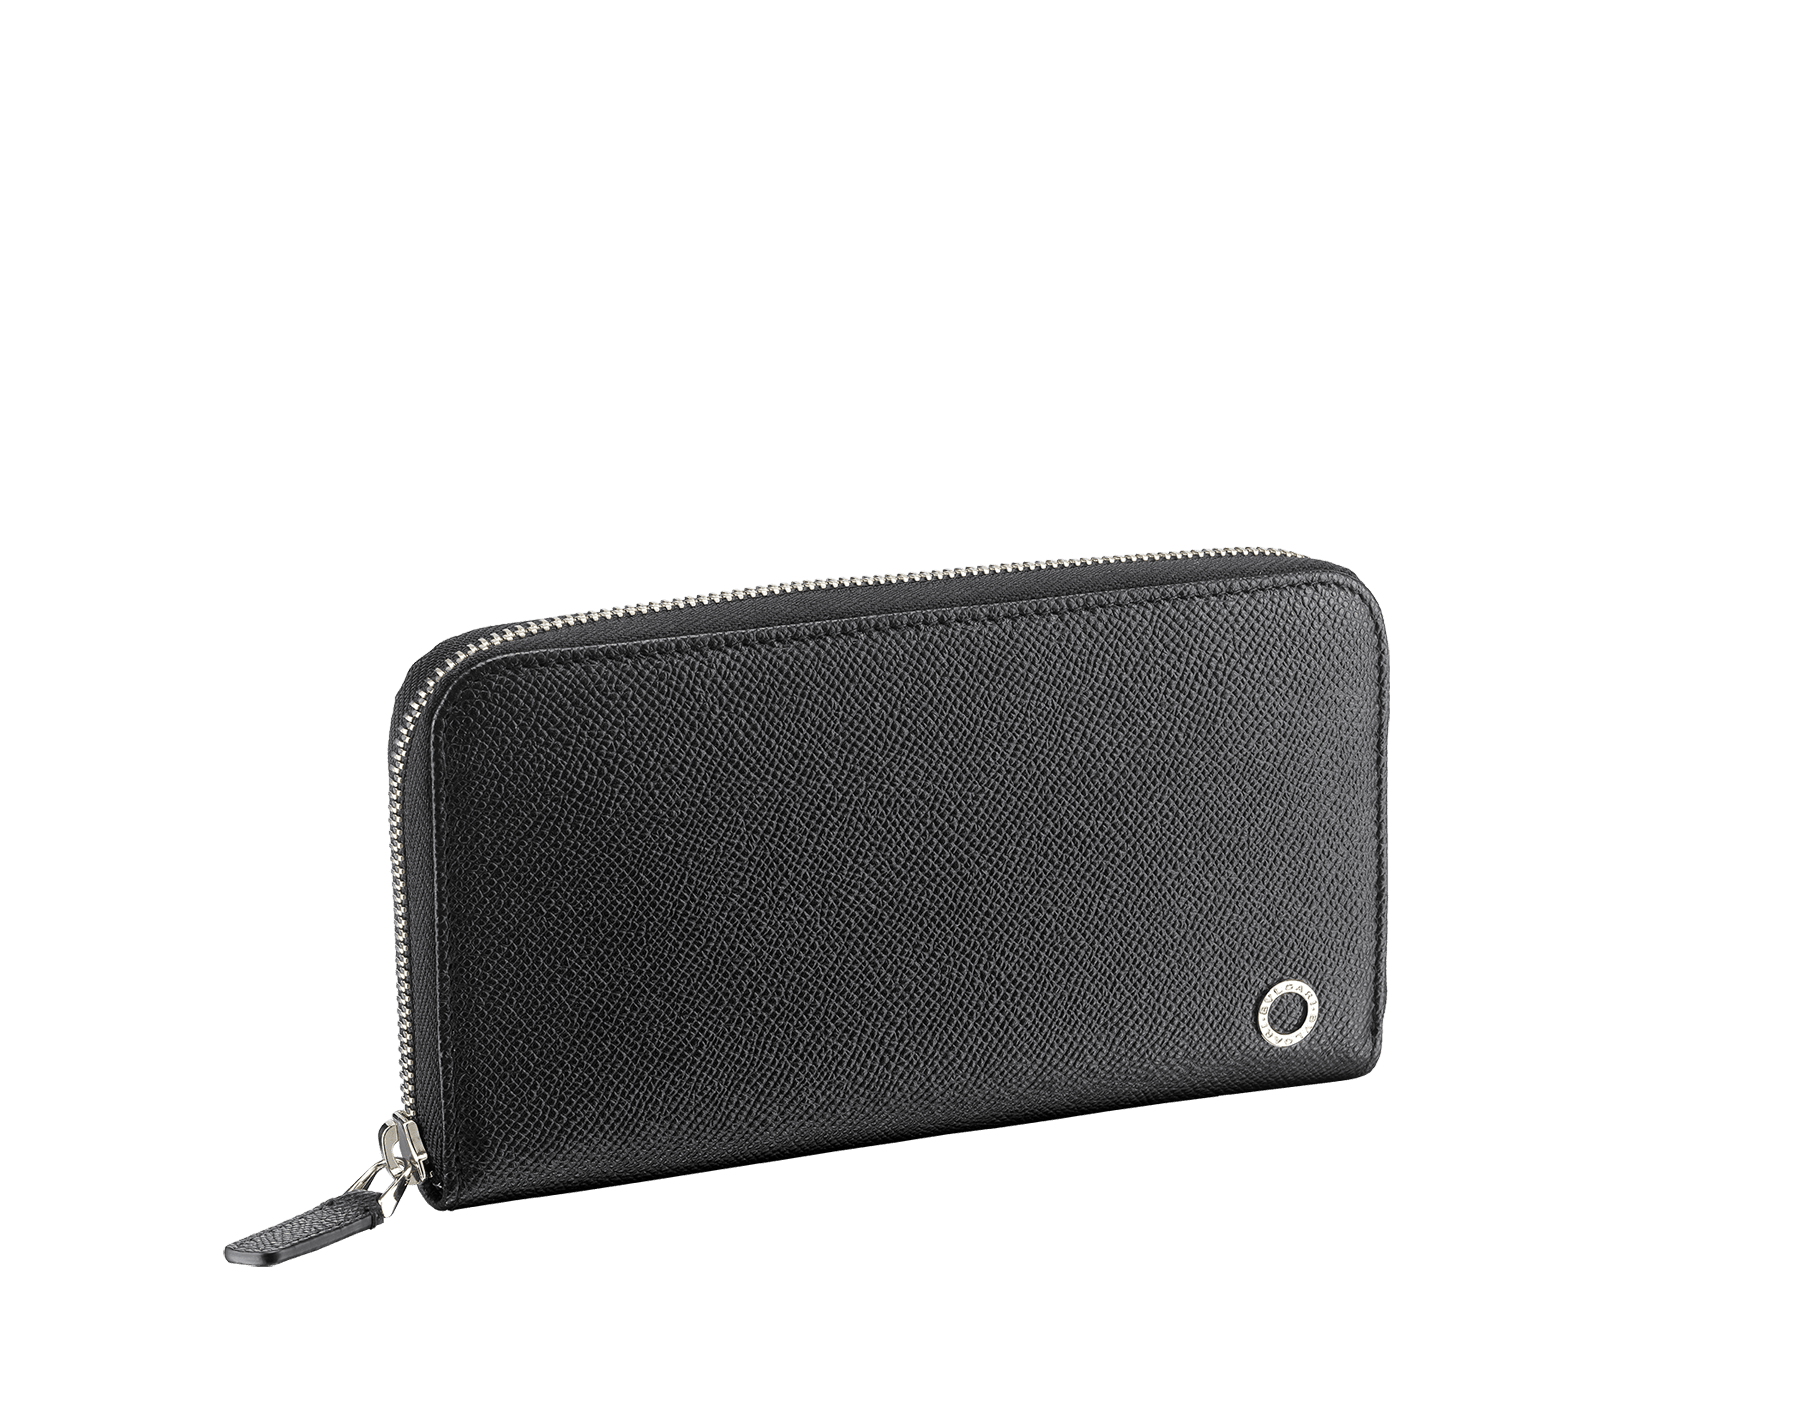 BVLGARI BVLGARI man zipped wallet in black and cobalt tourmaline grain calf leather and black nappa lining. Iconic logo décor in palladium plated brass. 288251 image 1